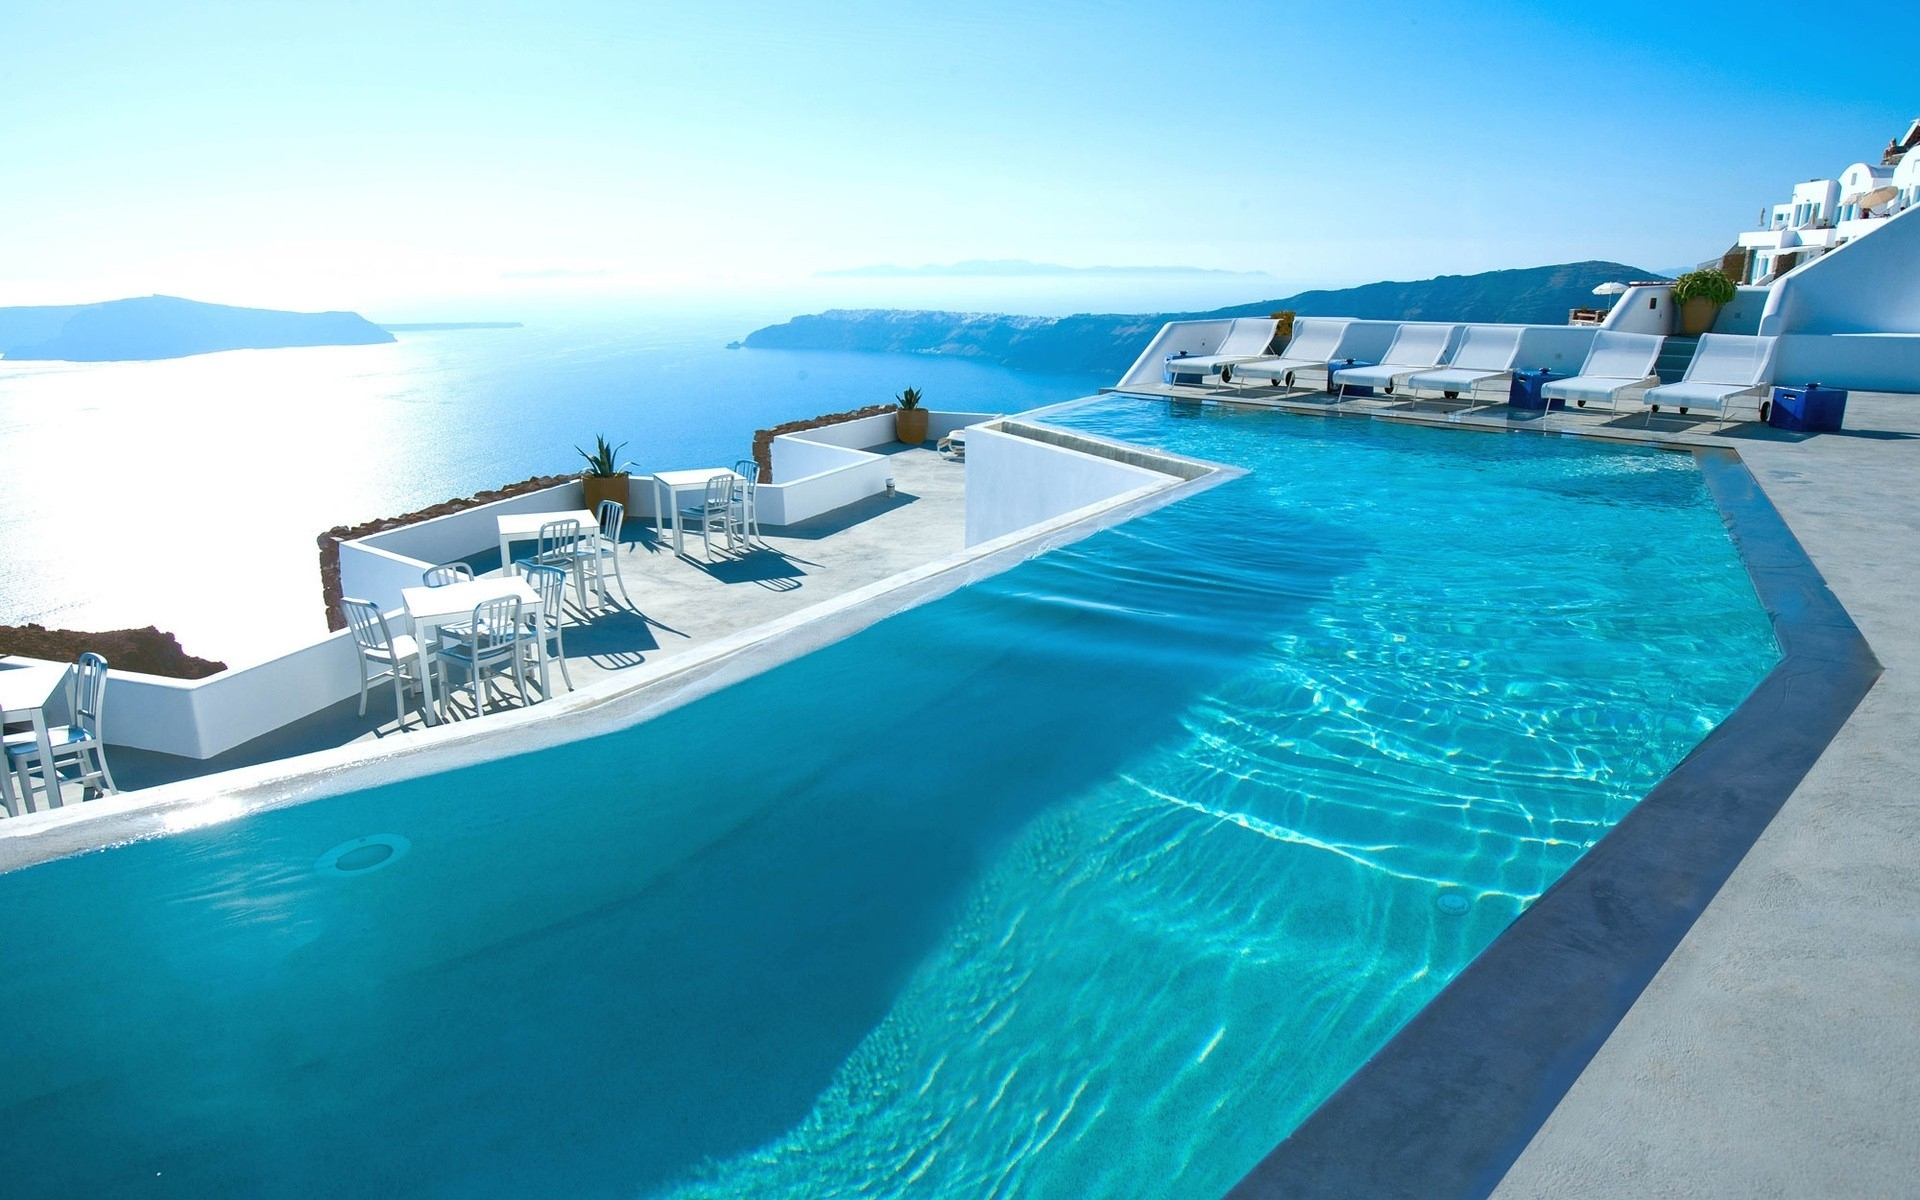 Luxurious Swimming Pools to enjoy Summer Santorini swimming pools 5 Swimming Pools to enjoy your Summer Luxurious Swimming Pools to enjoy Summer Santorini